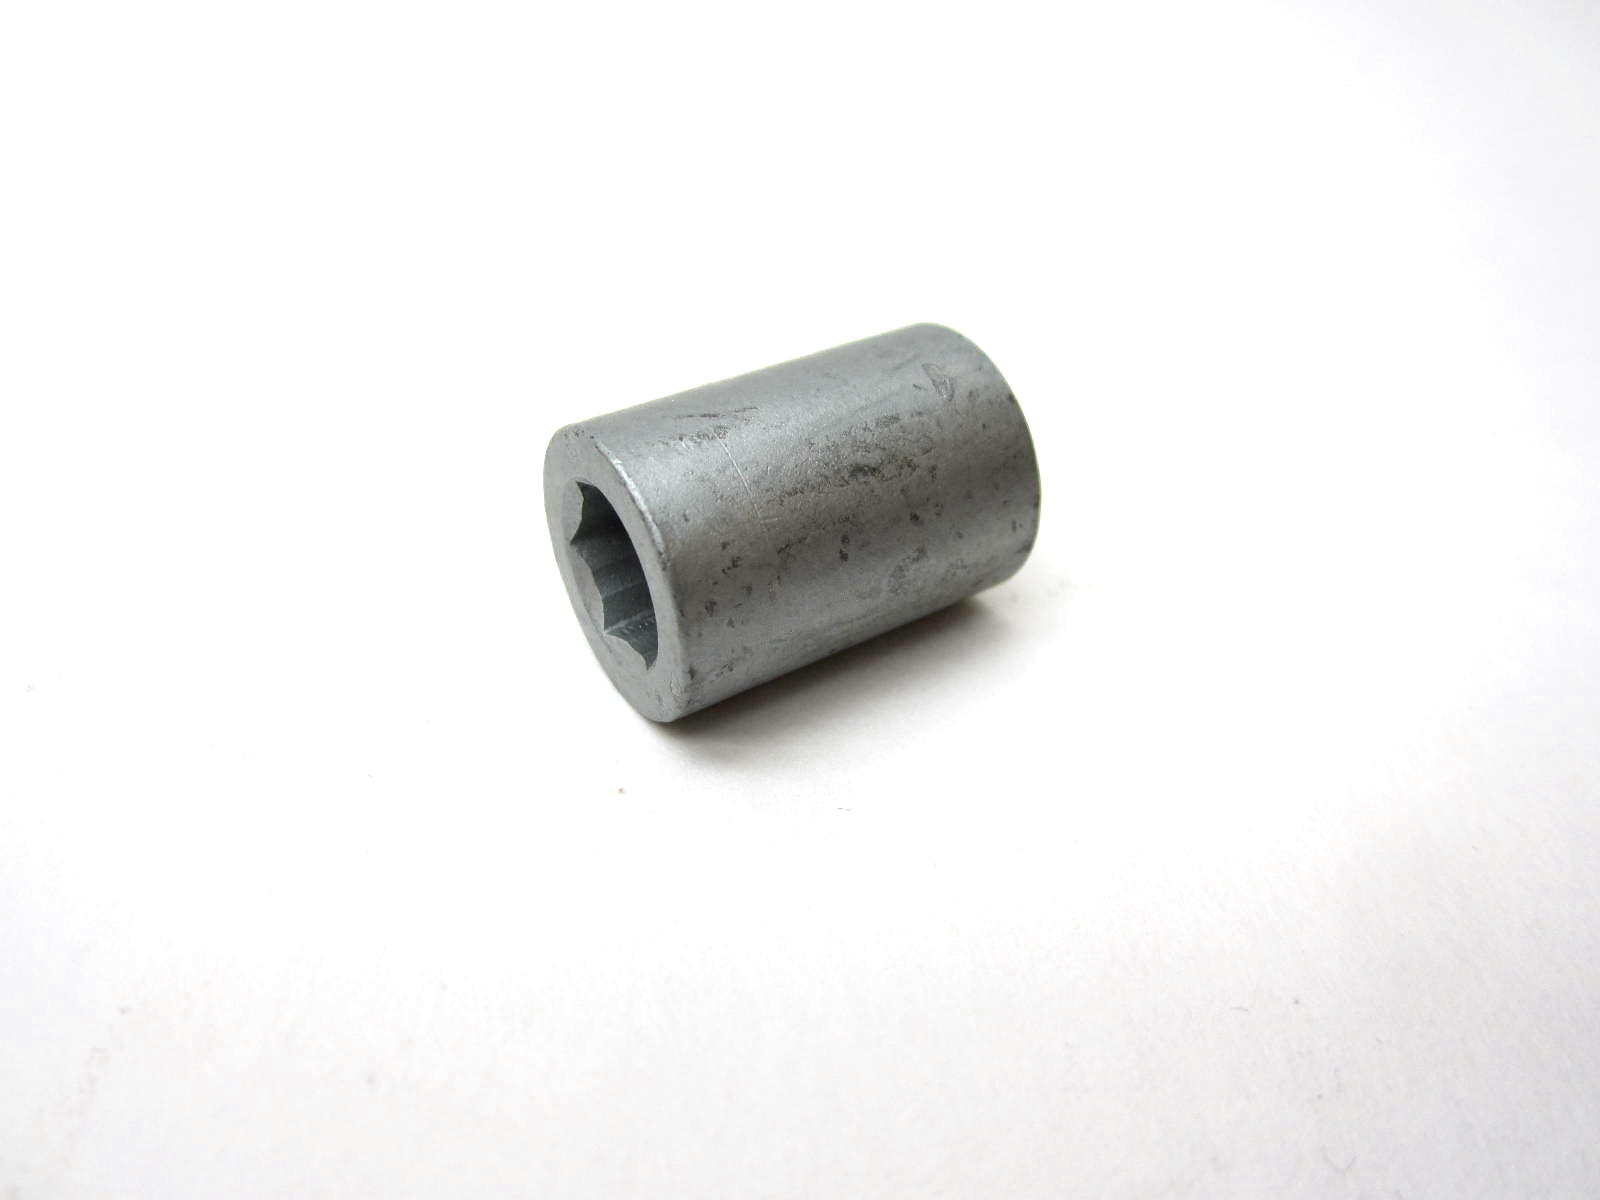 sleeve nut, for top cylinder head stud, allen head